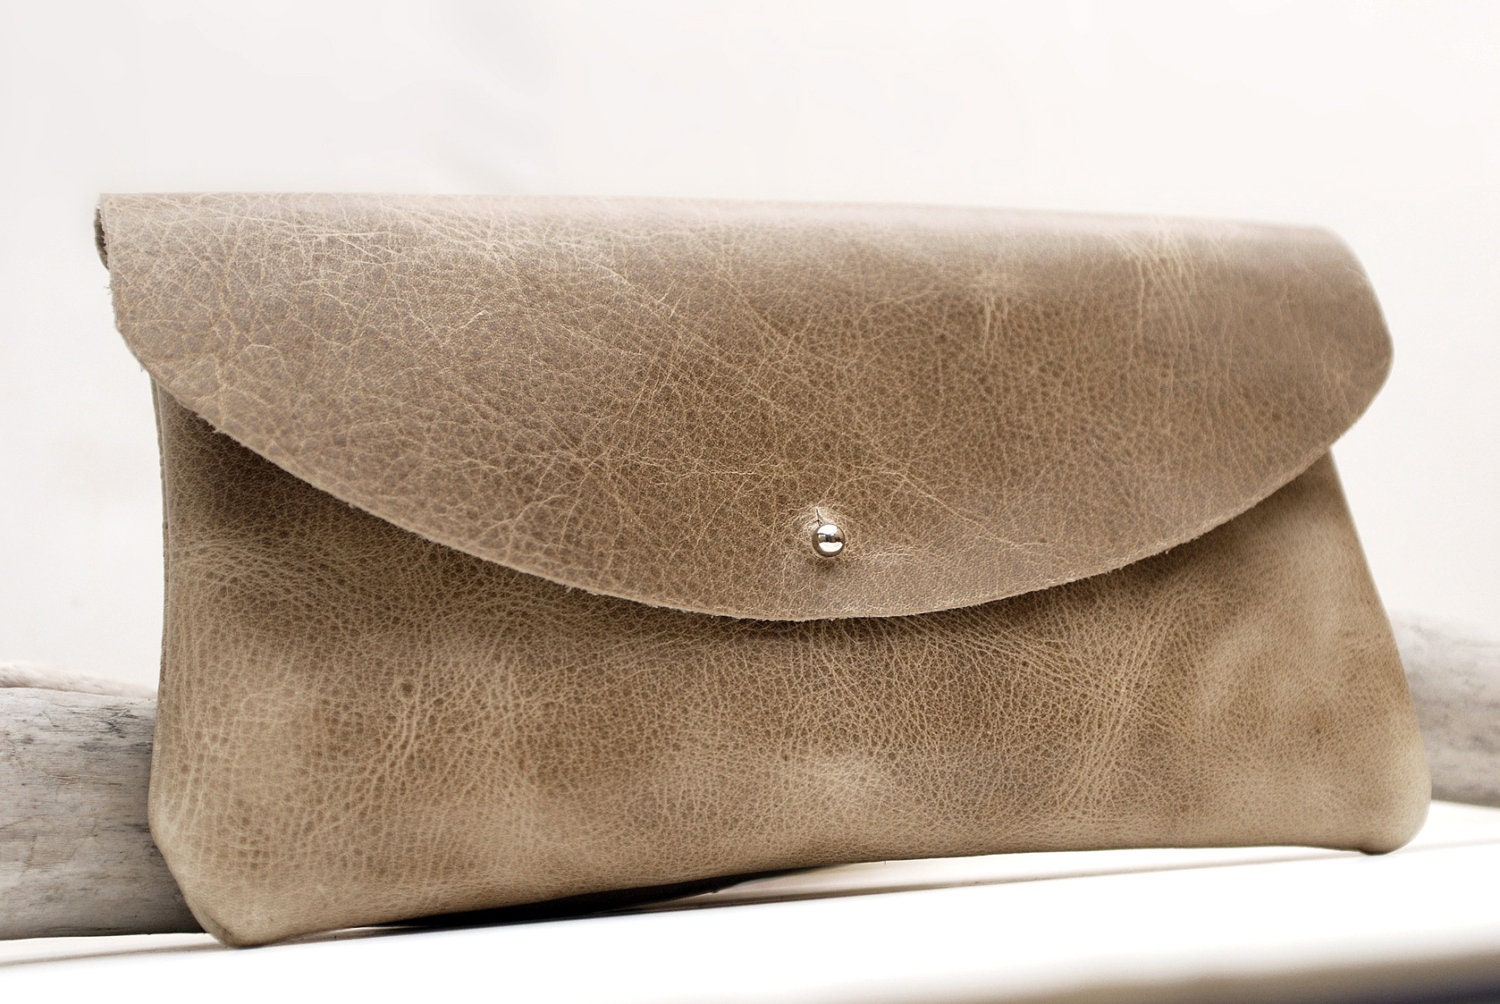 Taupe leather clutch bag. Oiled leather handbag. Bags and